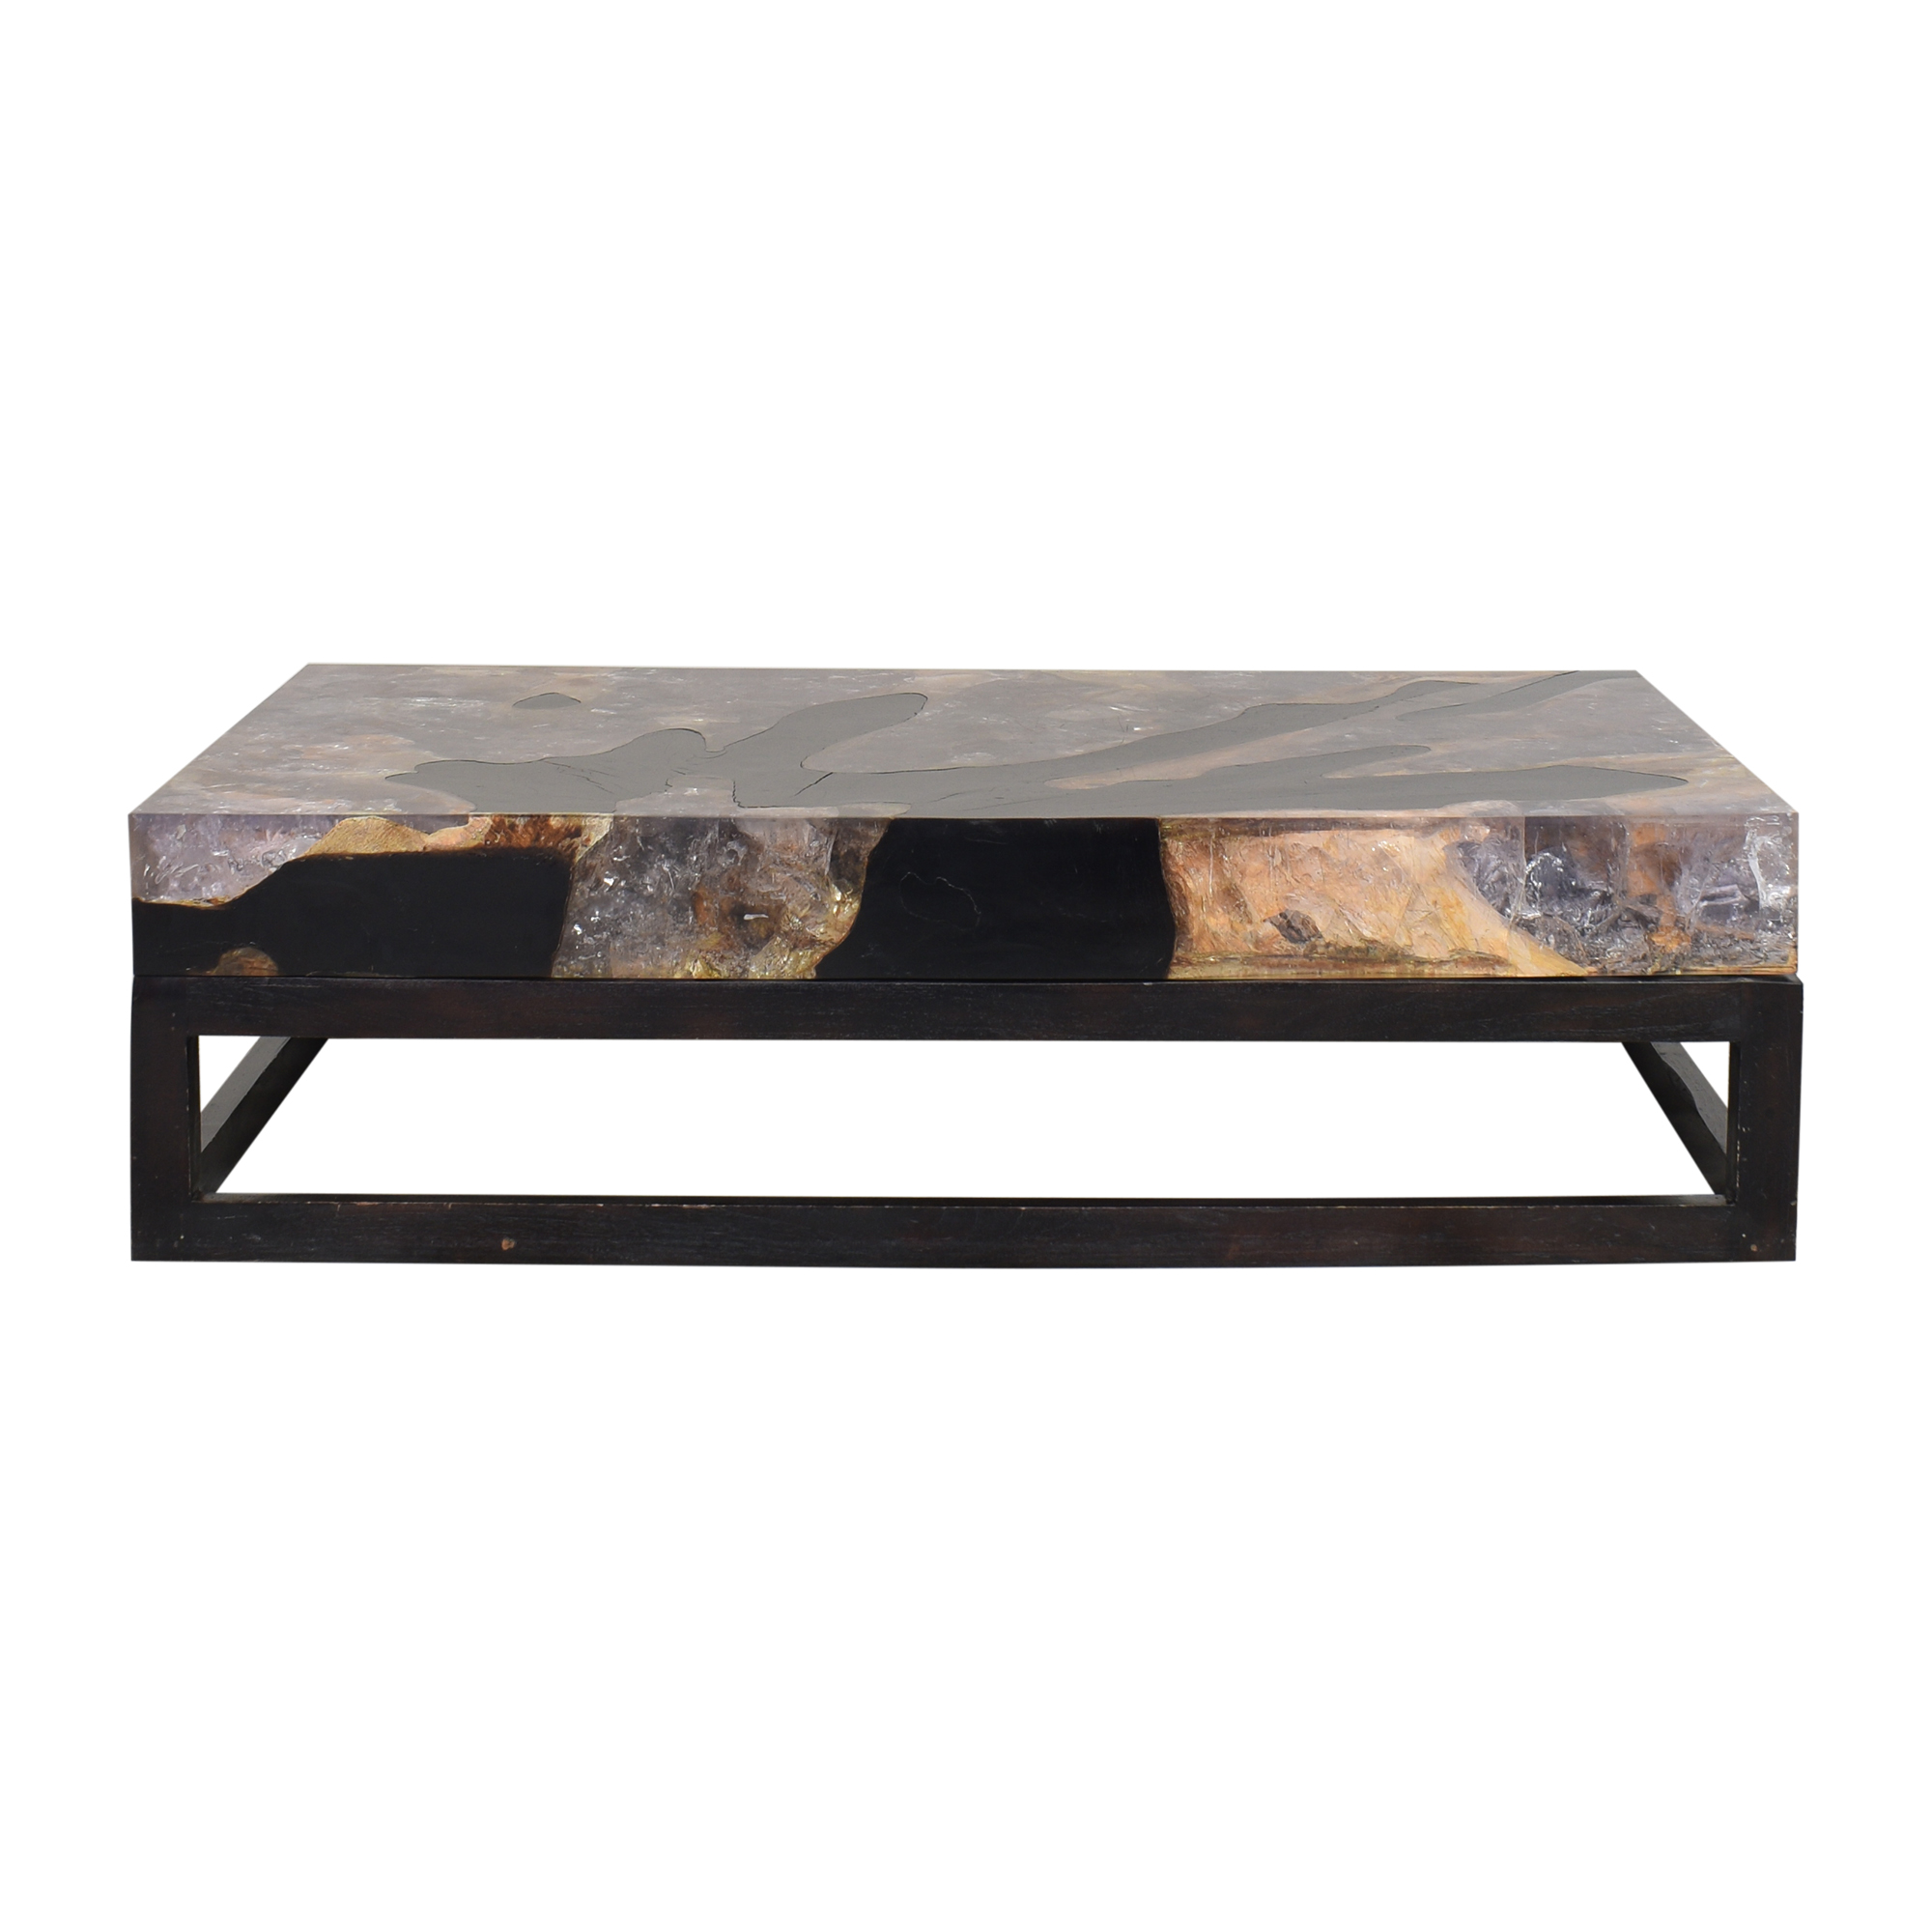 buy Andrianna Shamaris Andrianna Shamaris Natural Cracked Coffee Table online